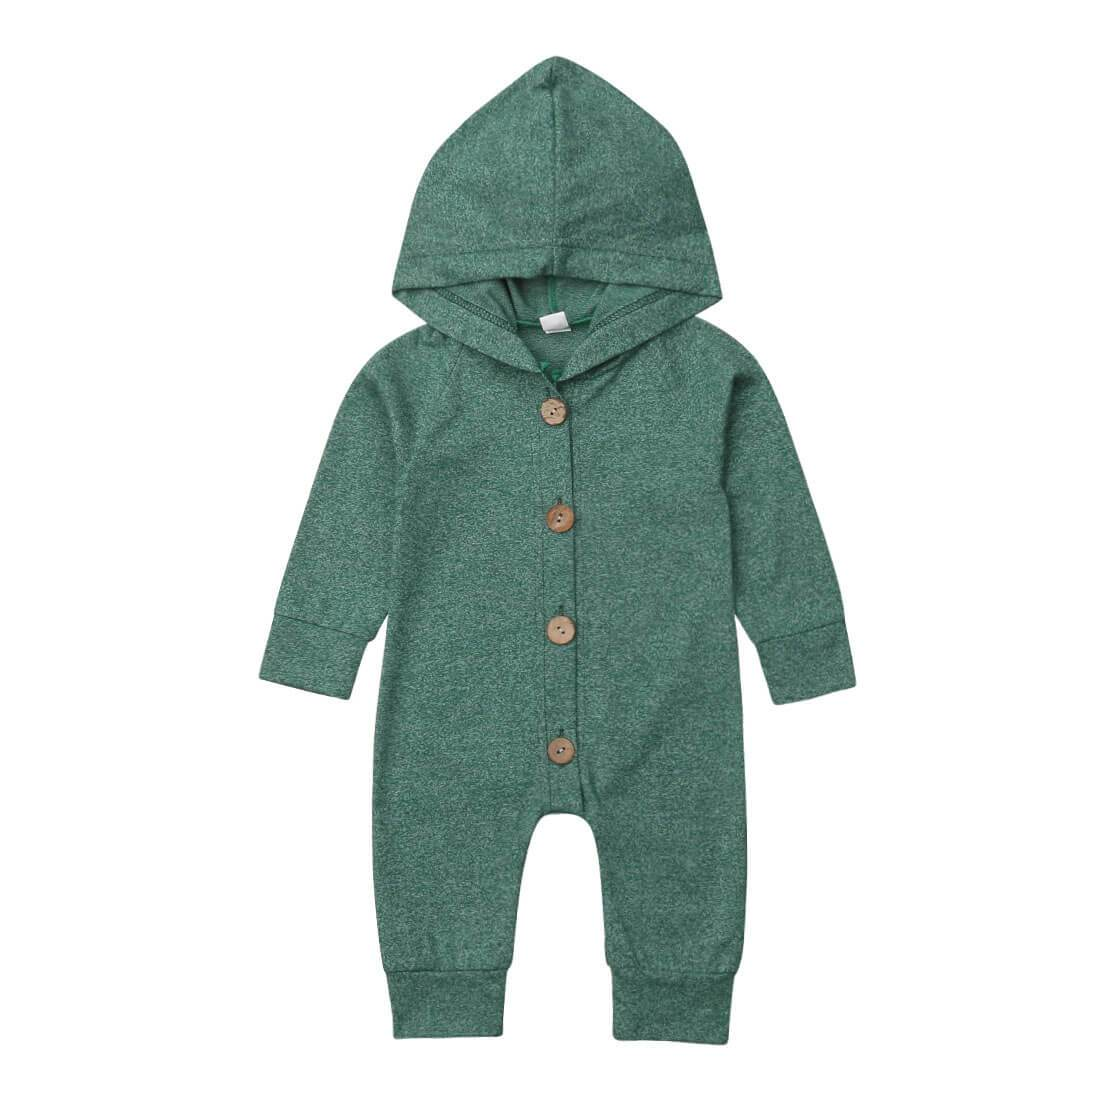 Green Hooded Jumpsuit - The Trendy Toddlers